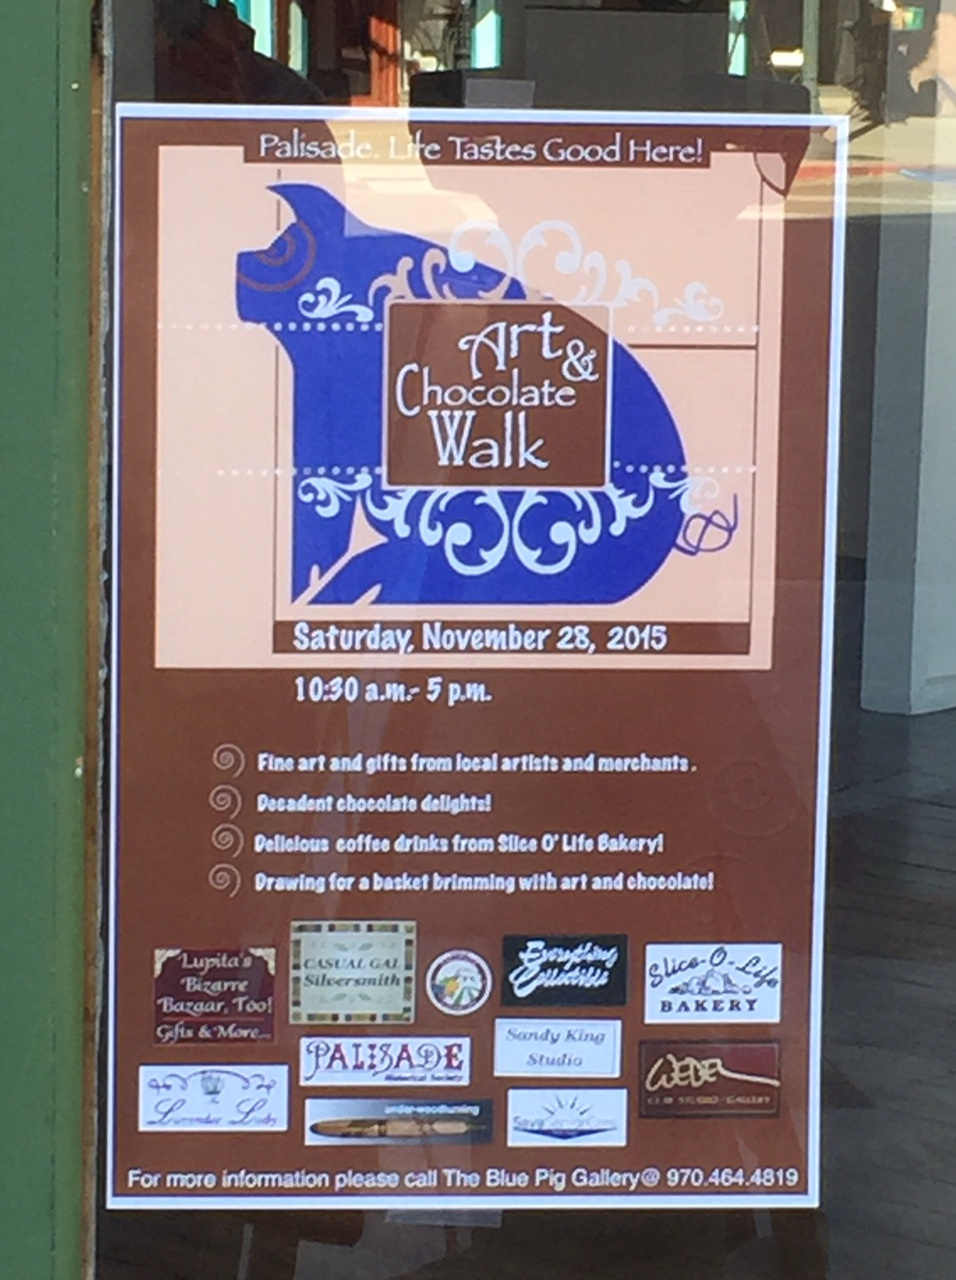 Art & Chocolate at the Blue Pig Gallery, Palisade, CO